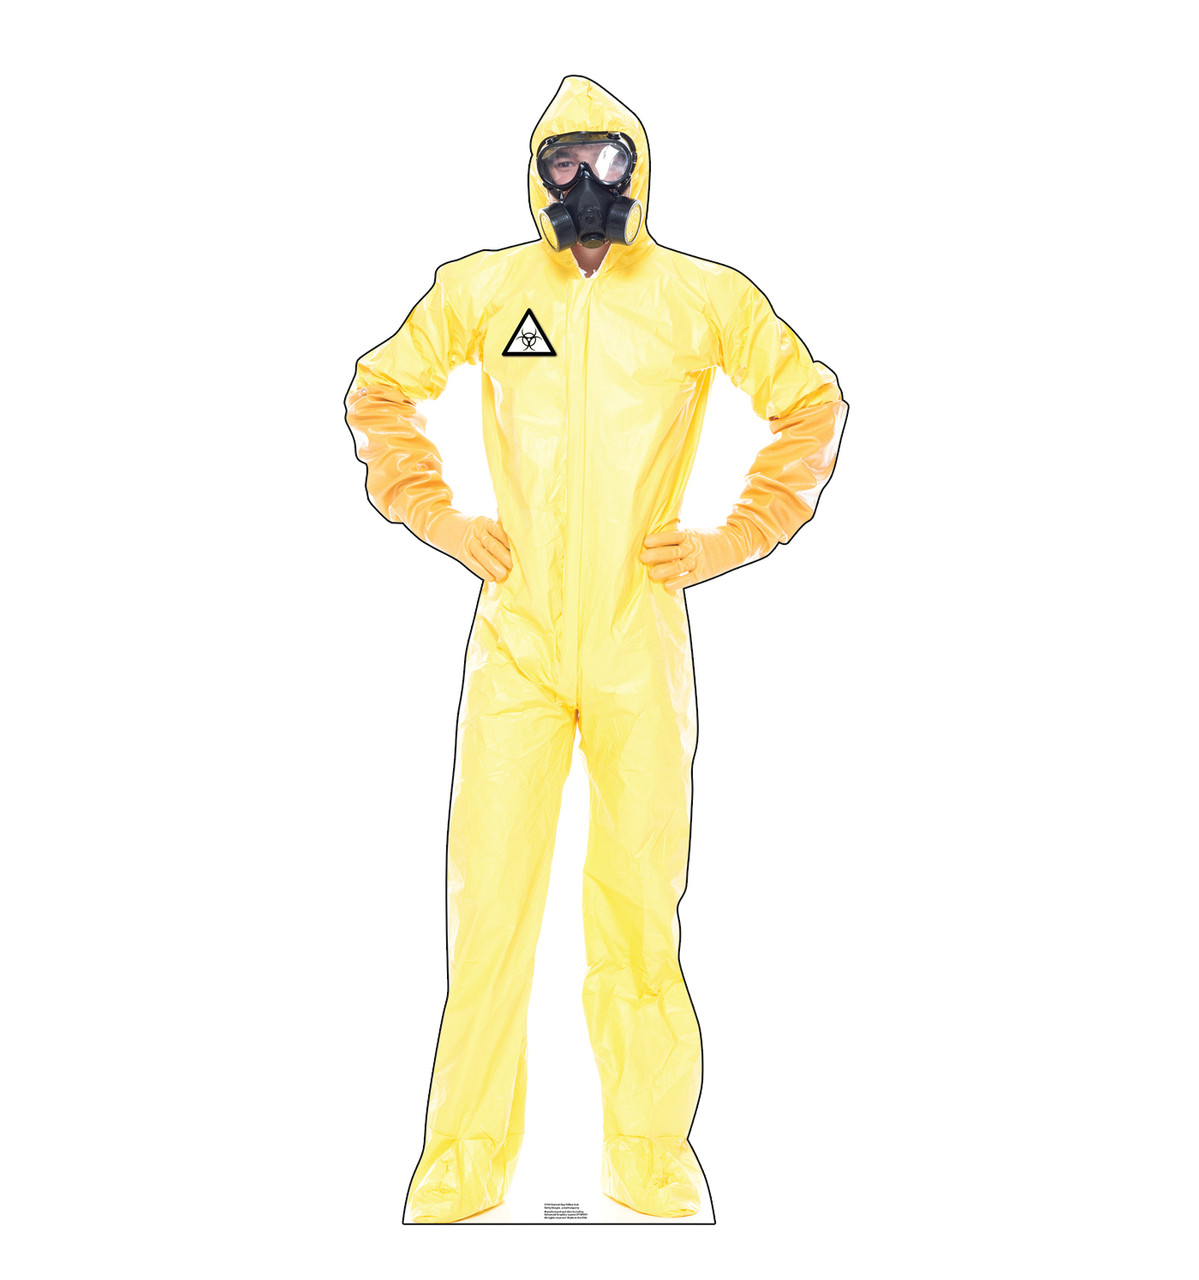 Life-size cardboard standee of a Hazmat Guy in Yellow Suit.